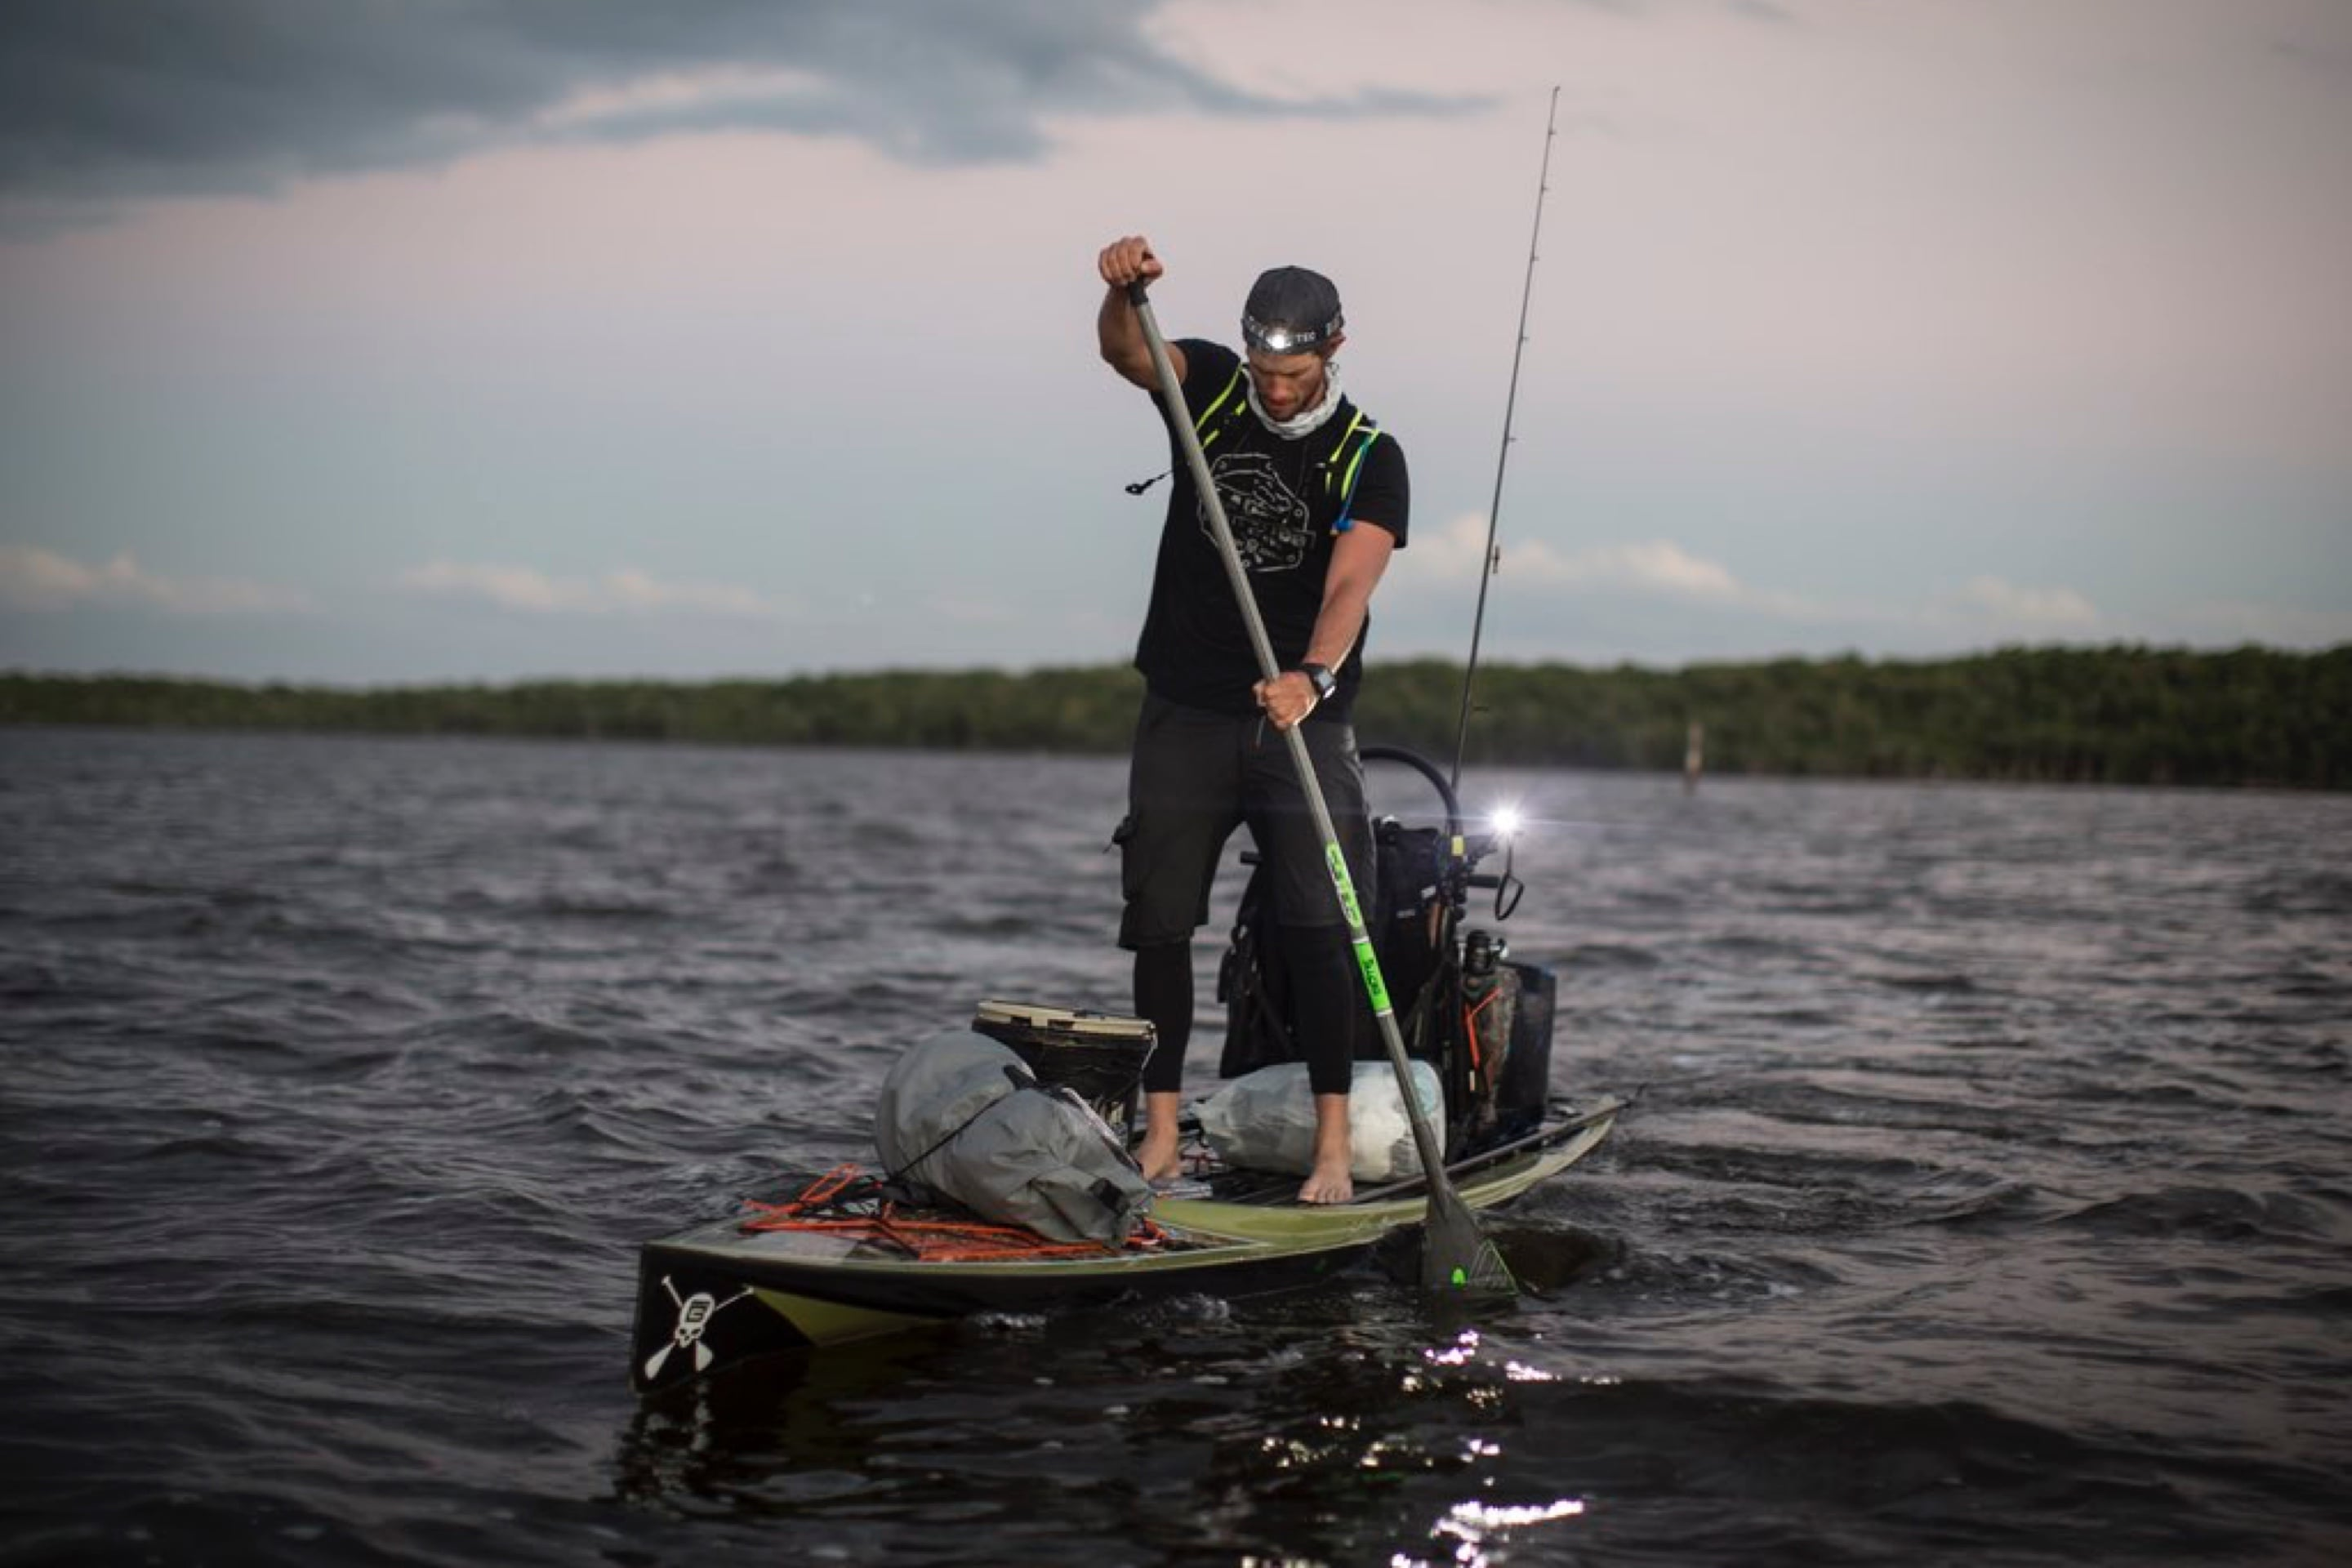 corey paddling through the everglades